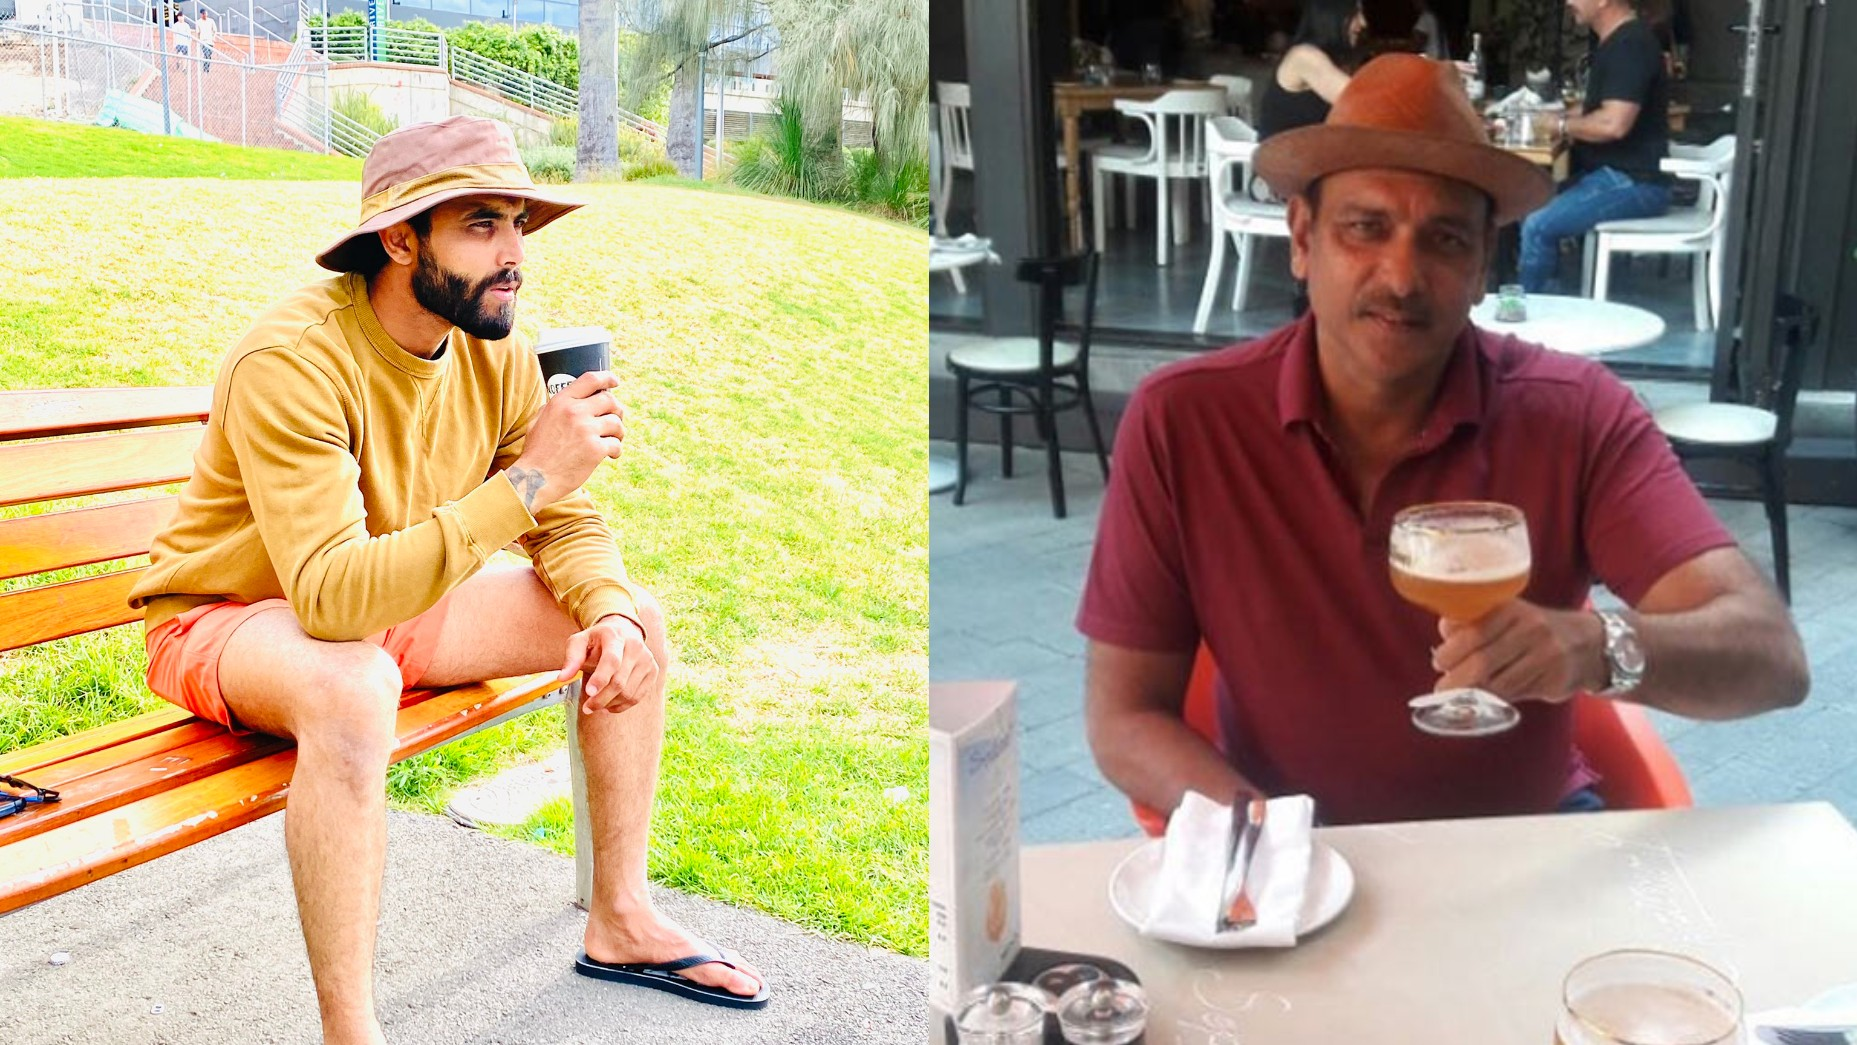 AUS v IND 2020-21: Fans ask Jadeja to stay away from Shastri after his